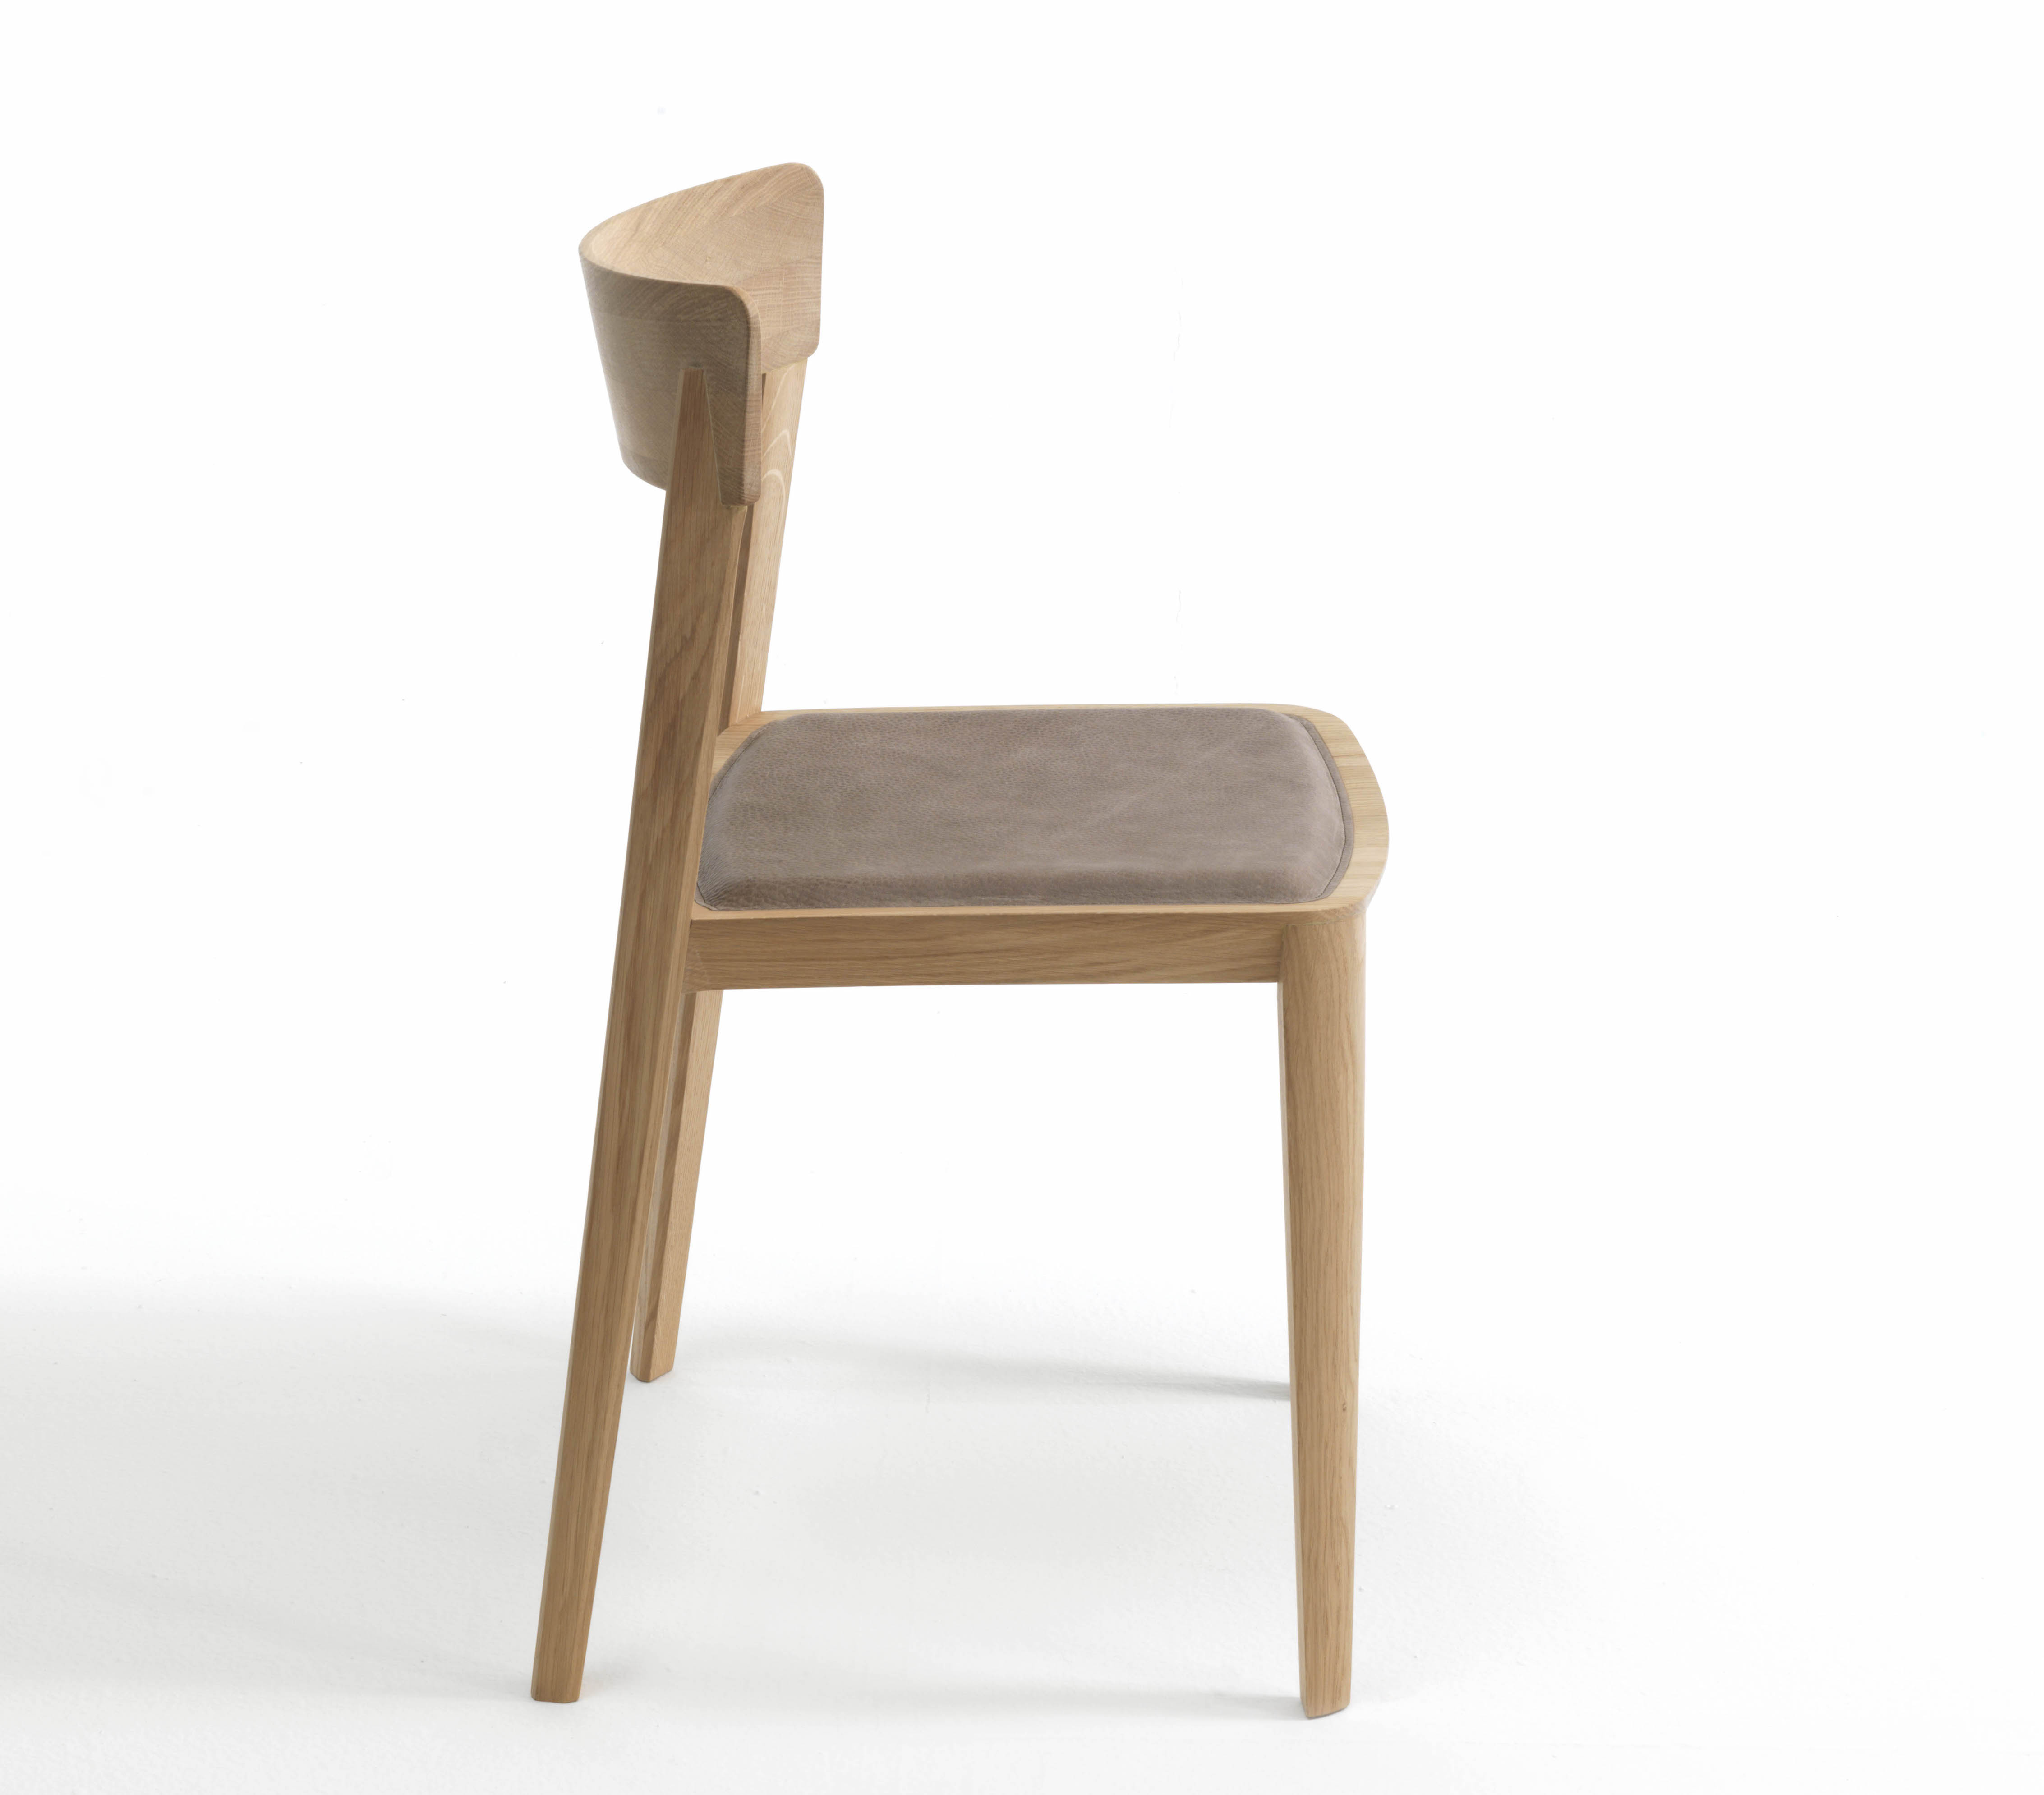 Mia Dining Chair In Oak With Leather Seat